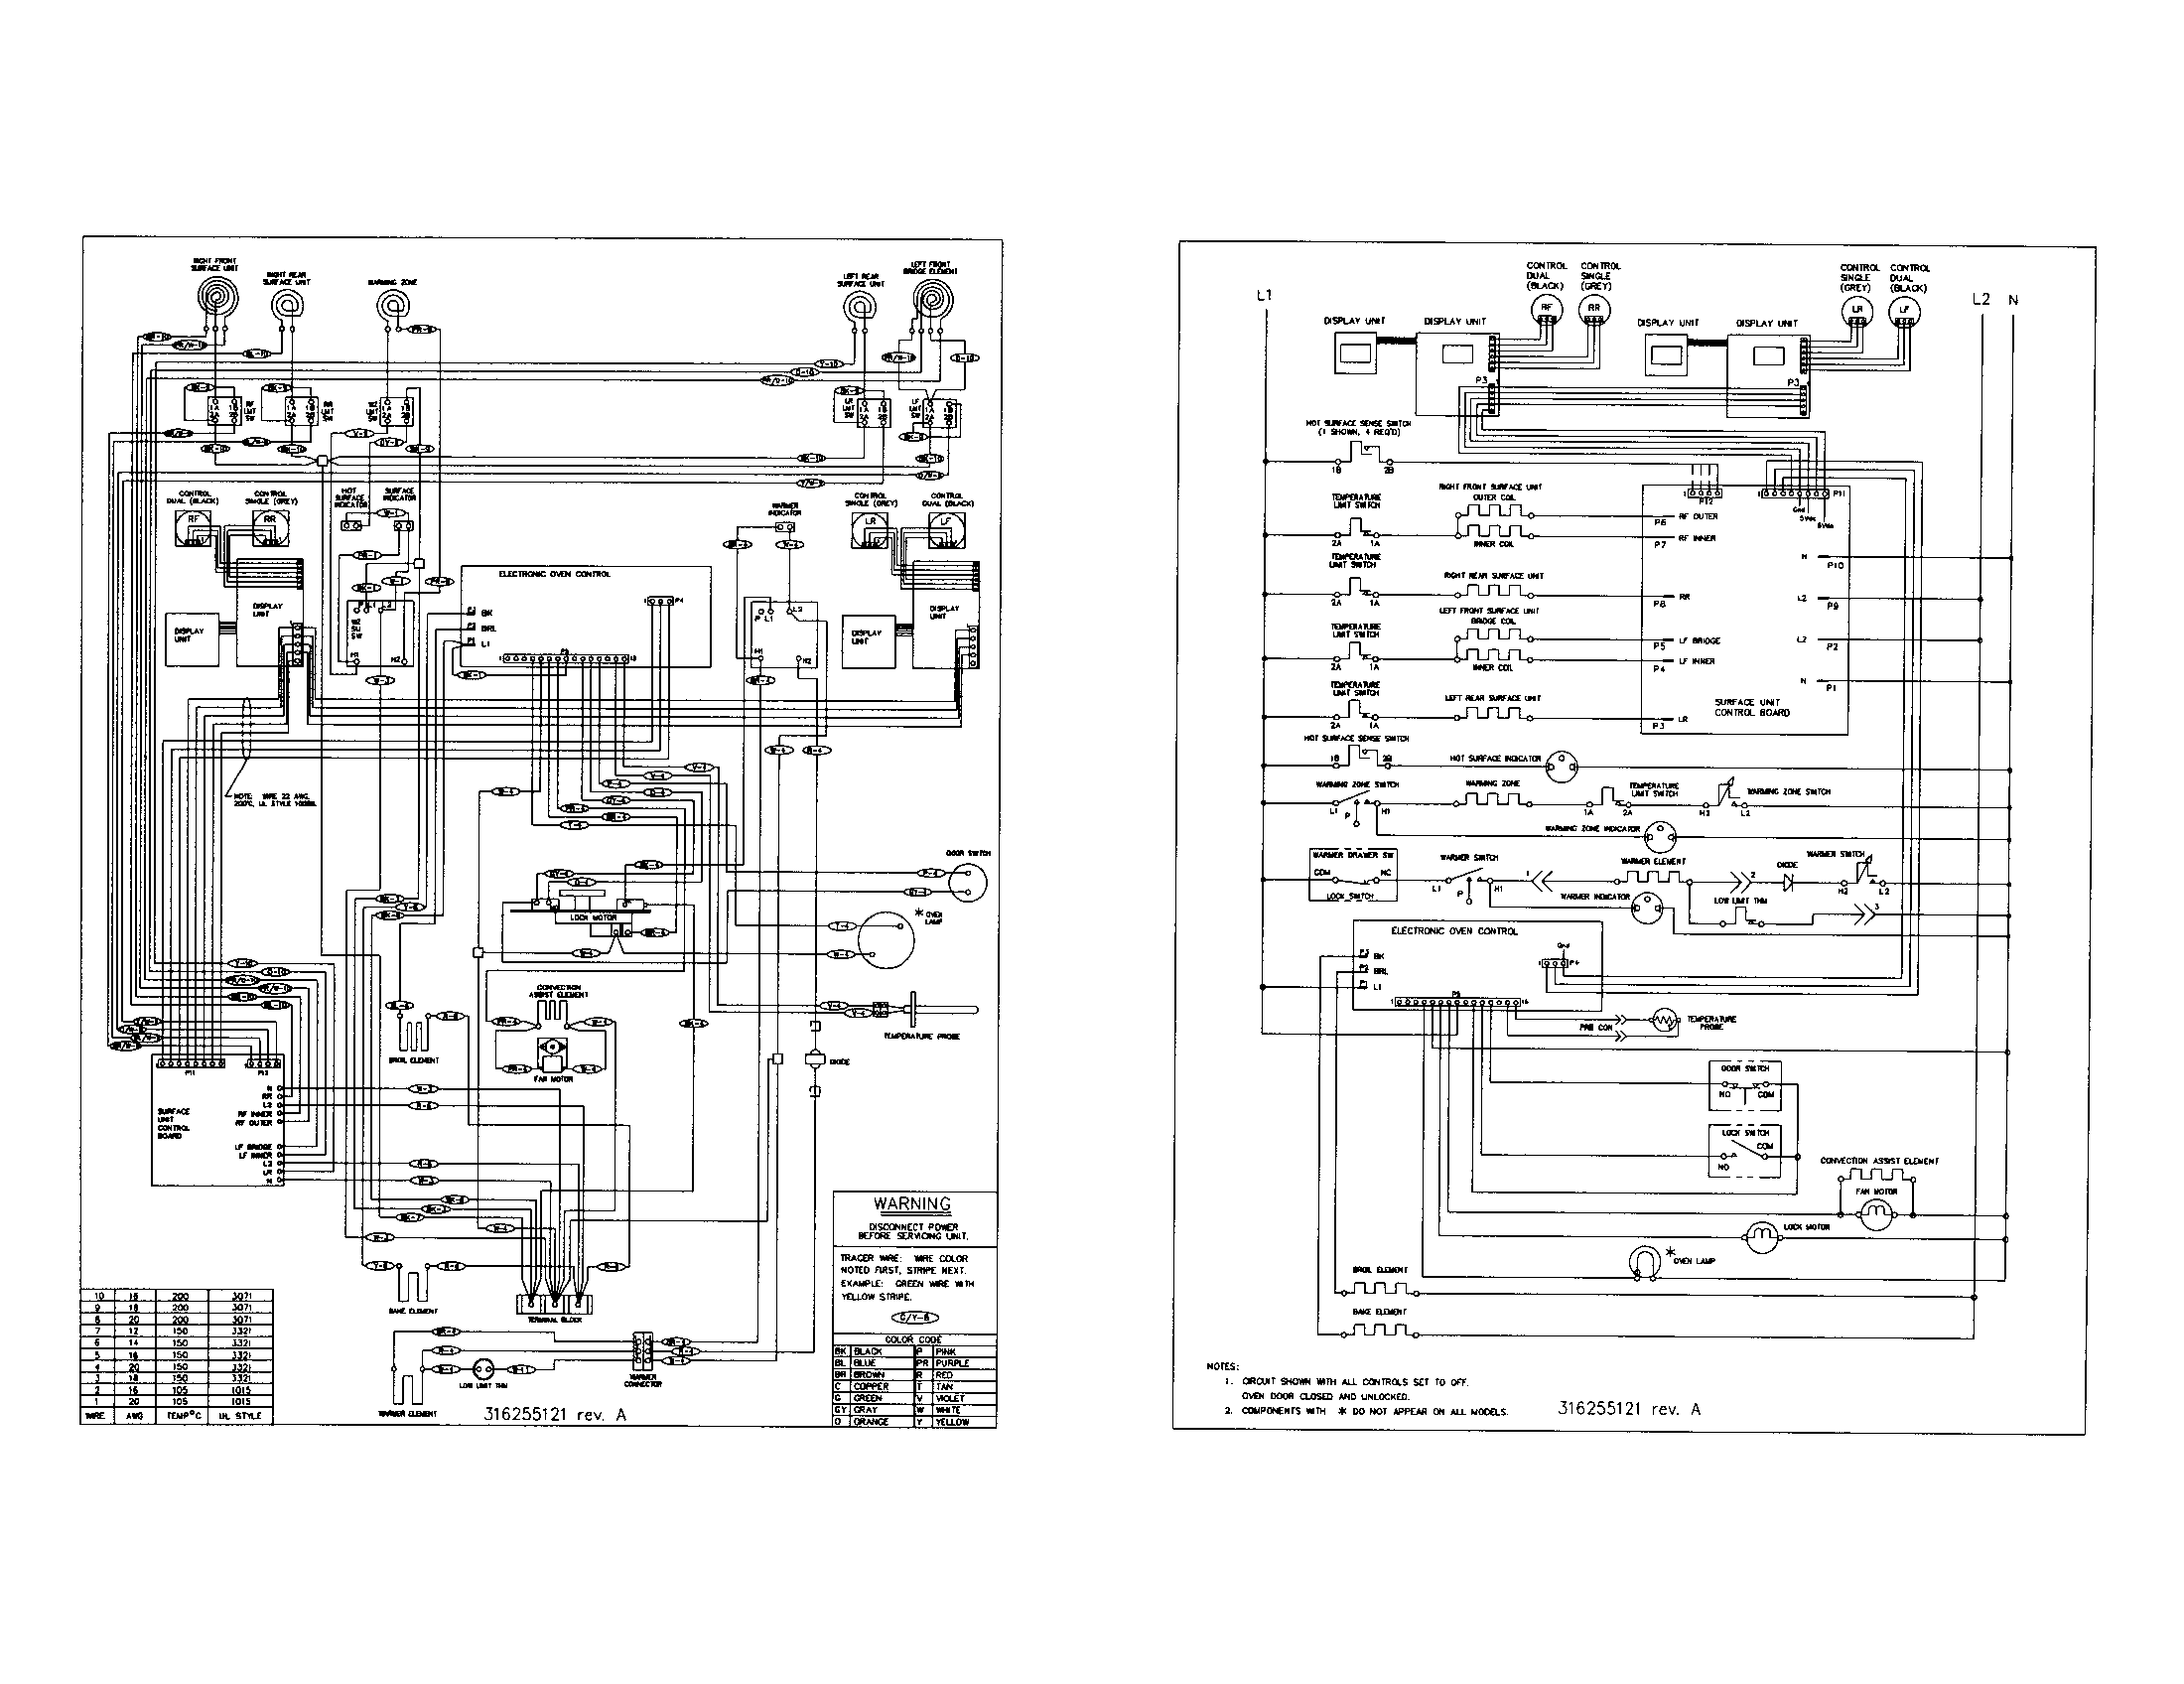 Kitchenaid Dryer Wiring Diagram Free For You Heating Element Ge Door Switch Engine Image